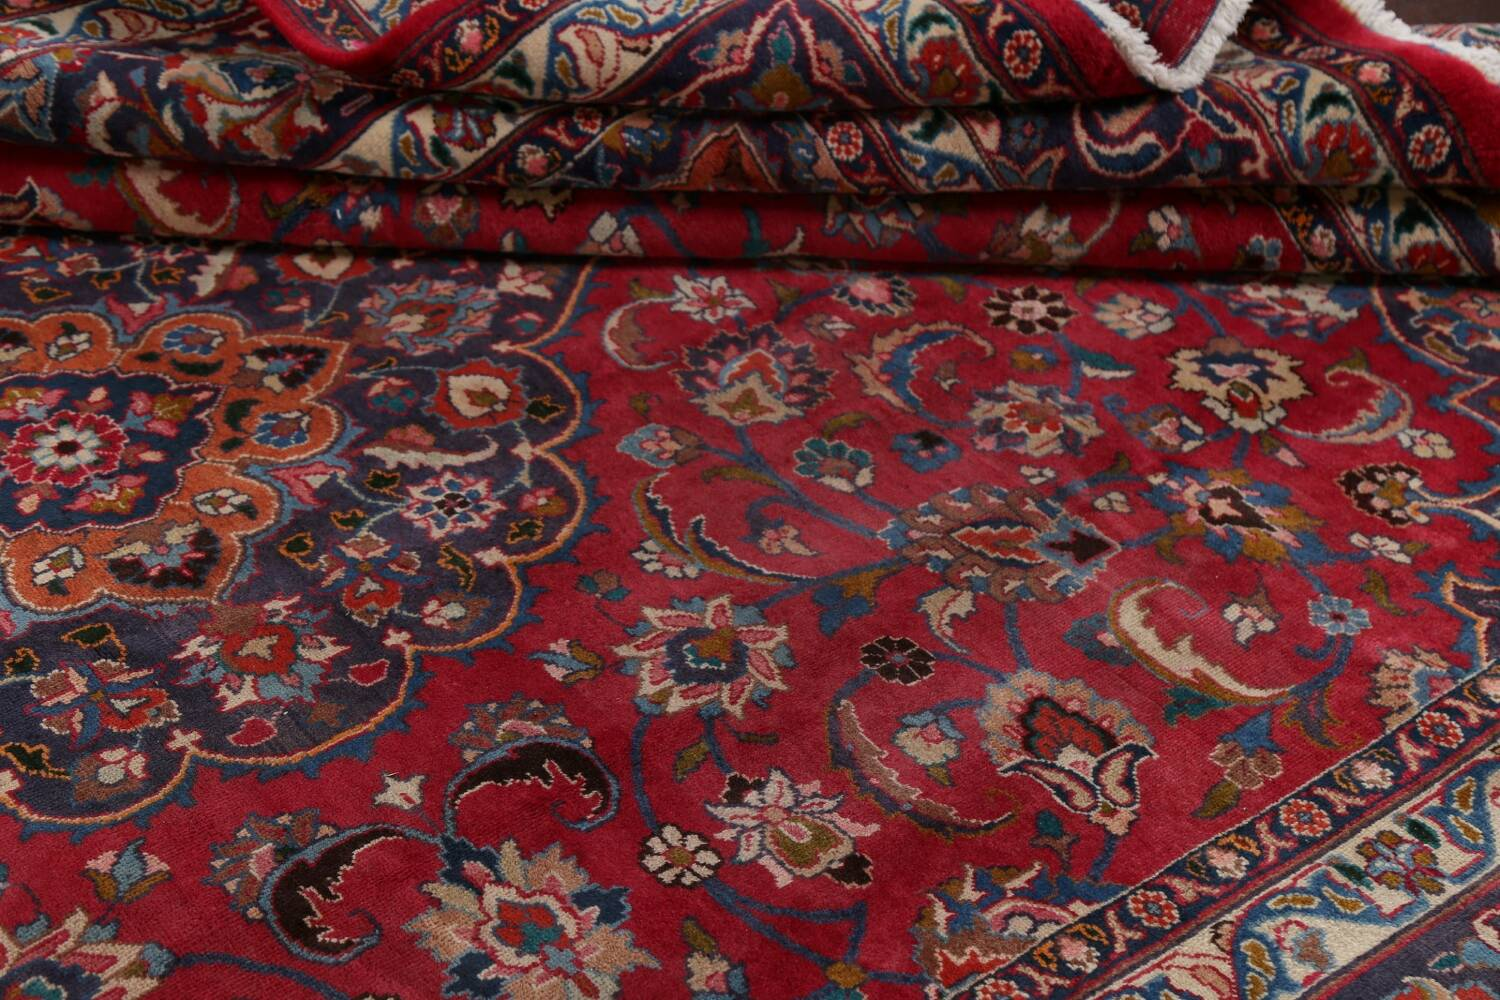 Vintage Floral Mashad Persian Red Area Rug 8x11 image 17